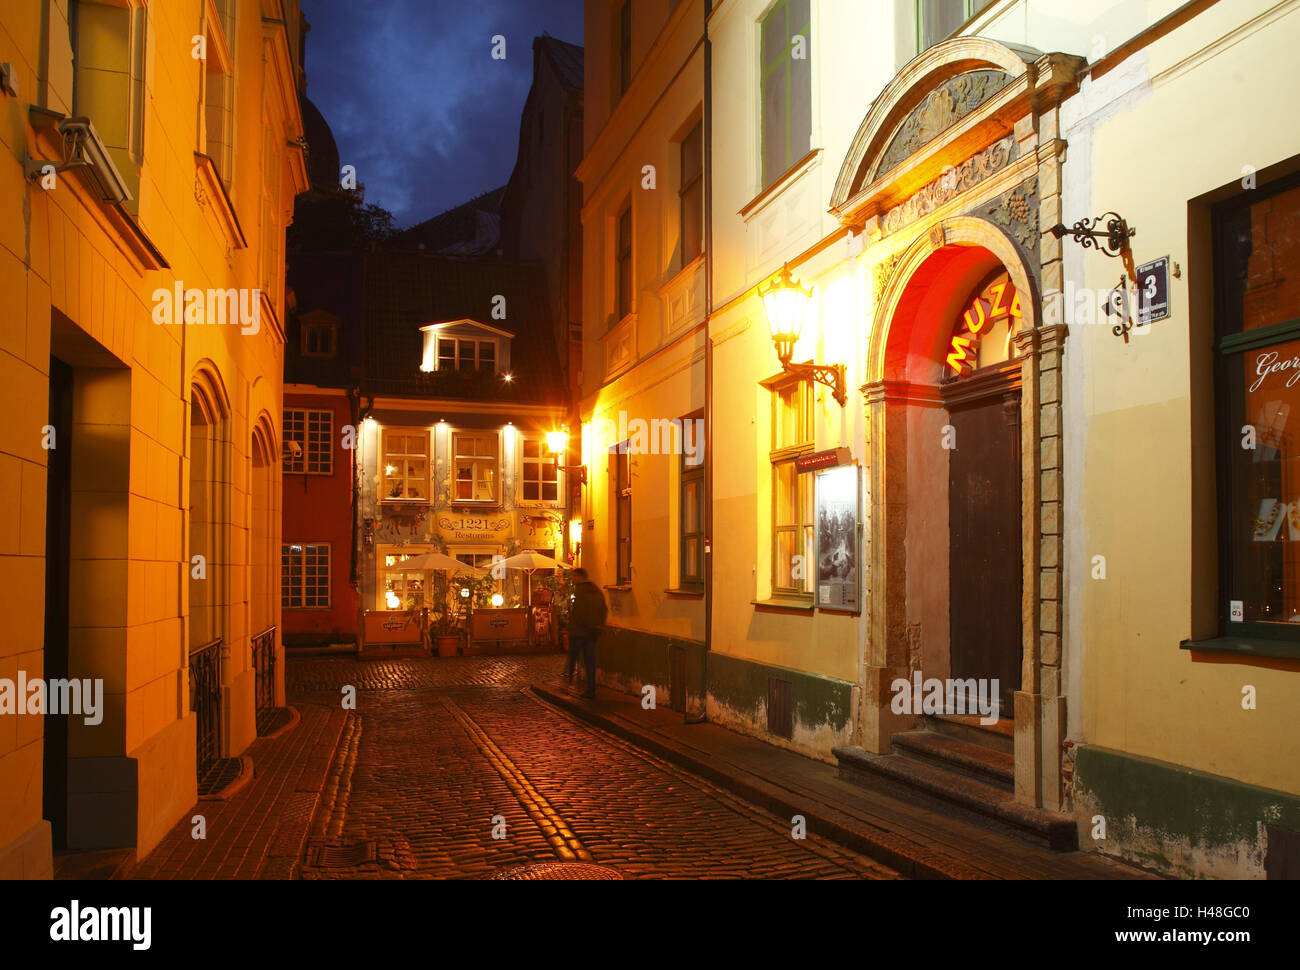 Latvia, Riga, Kramu Iela with historic homes in the Old Town, in the evening, - Stock Image